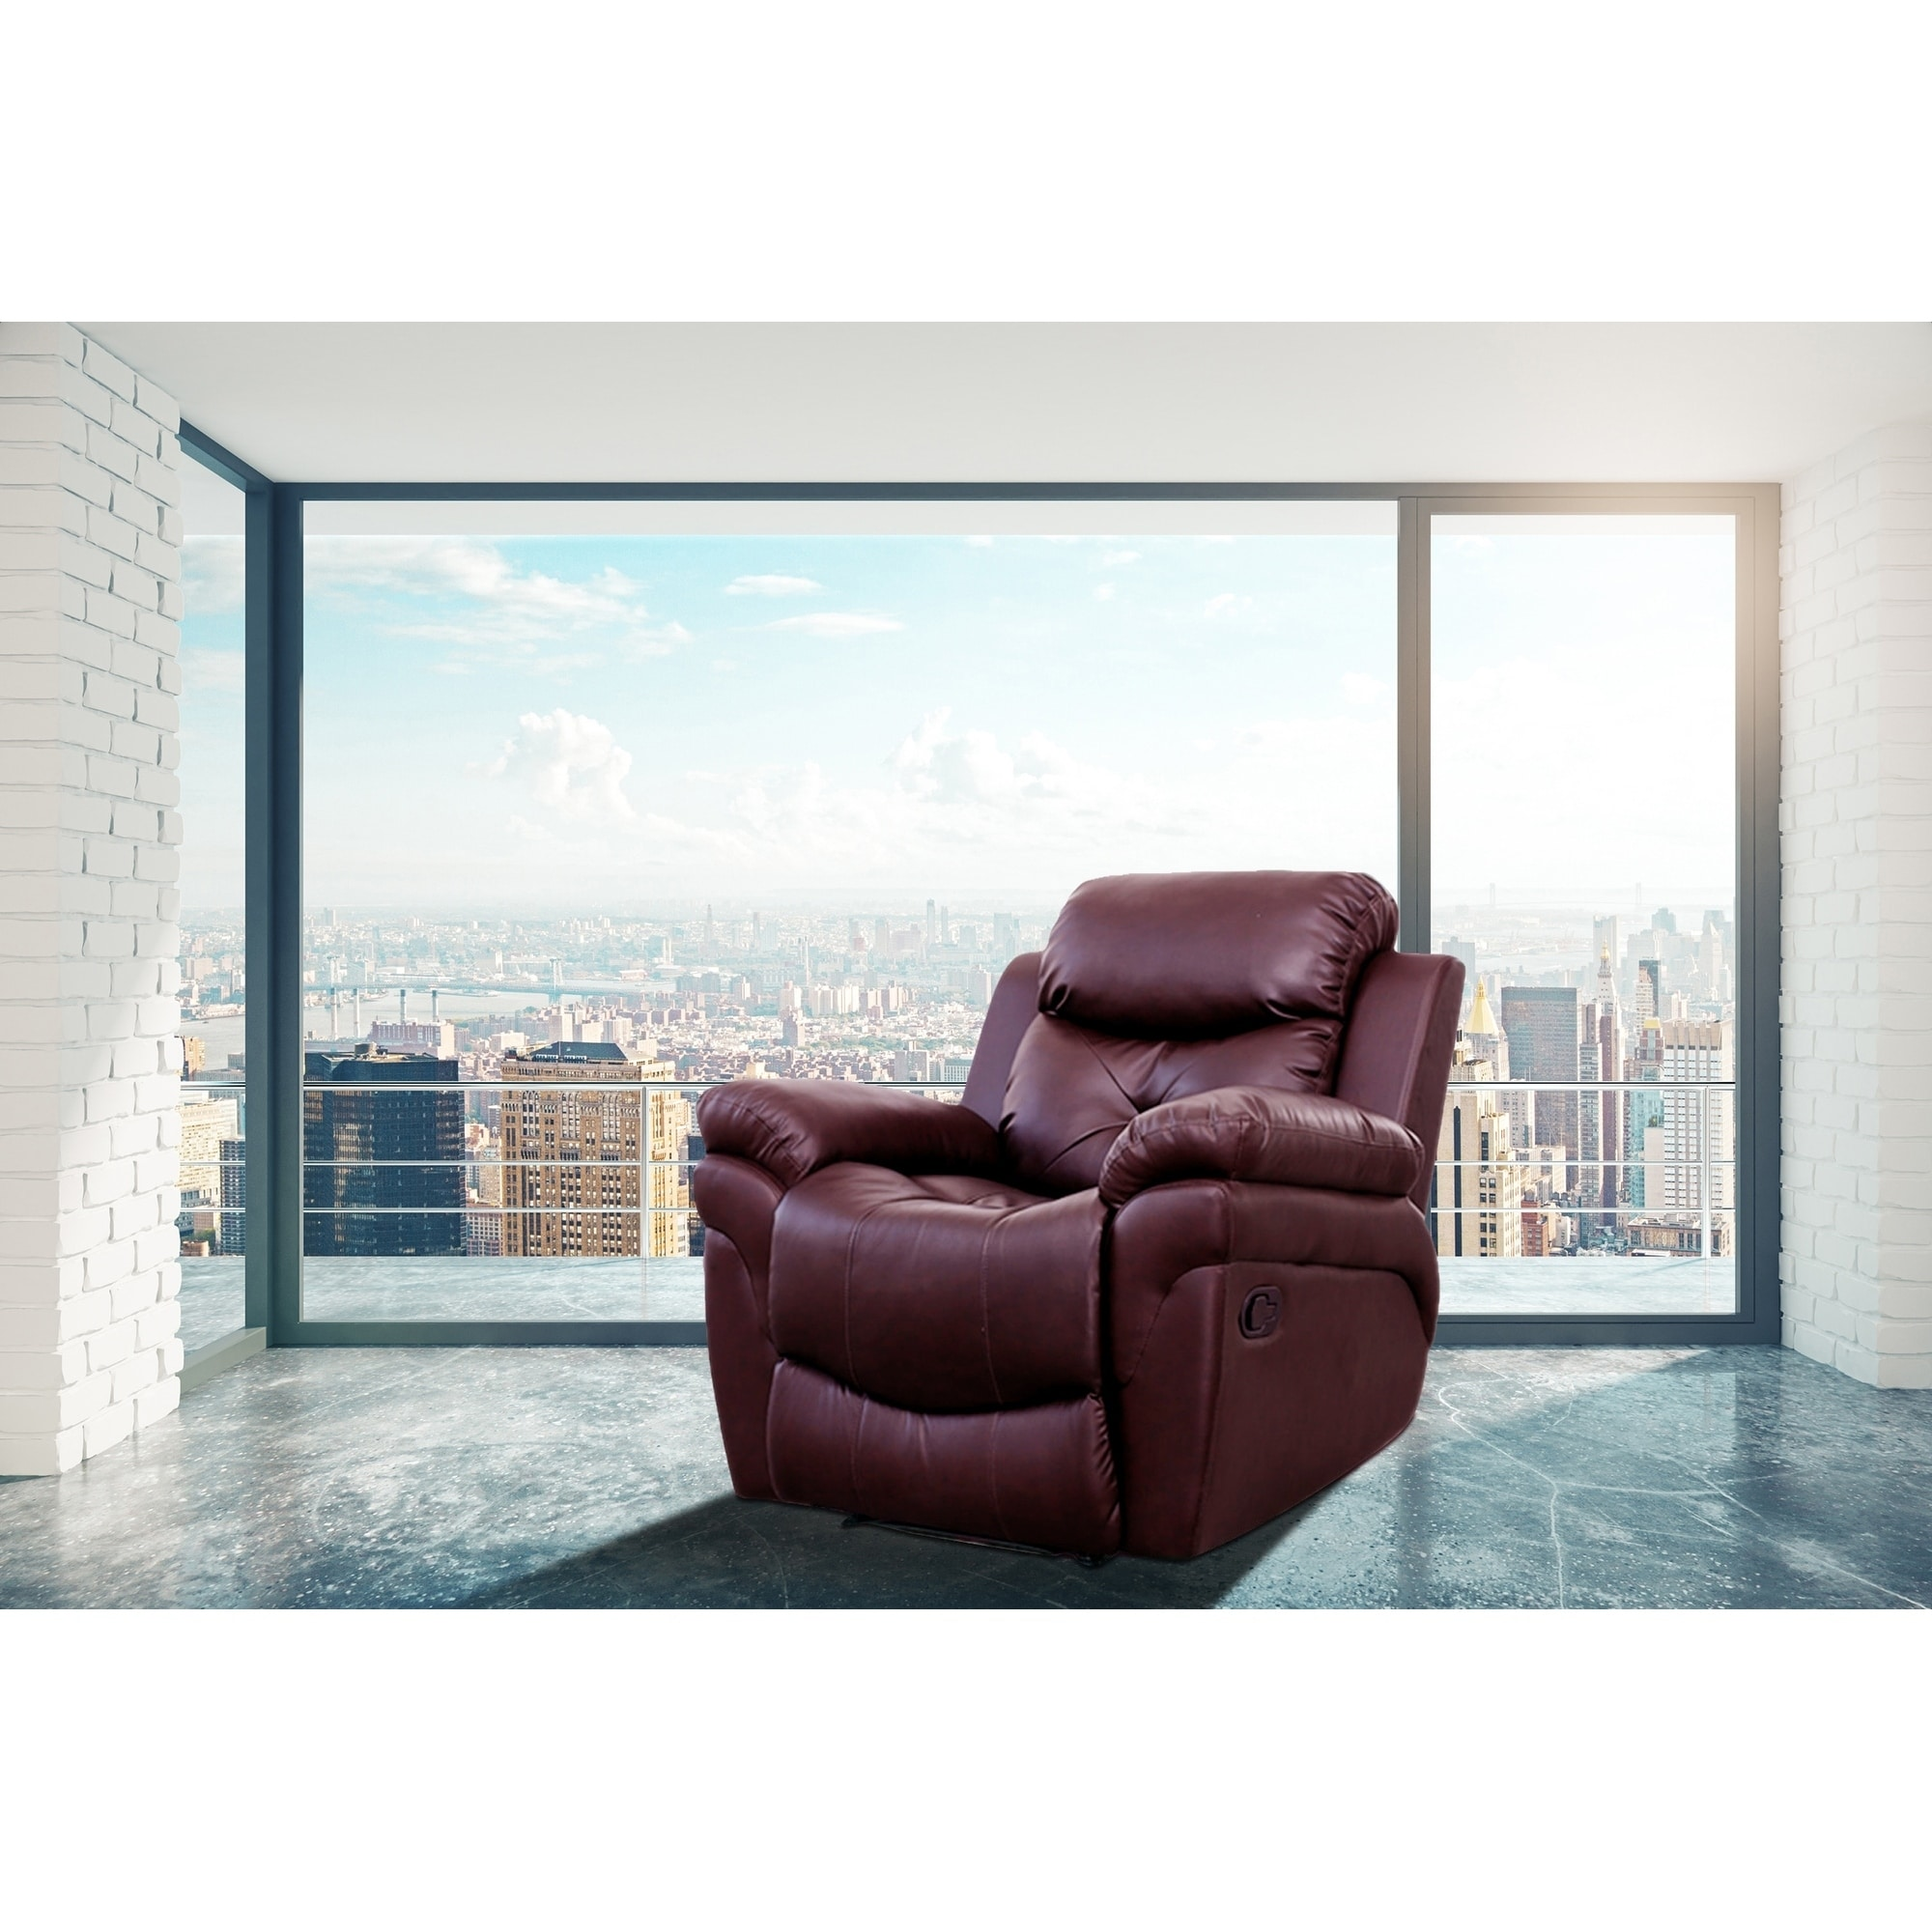 Rohan Burgundy Faux Leather 6 Points Heated Vibrating Massage Manual Recliner Arm Chair